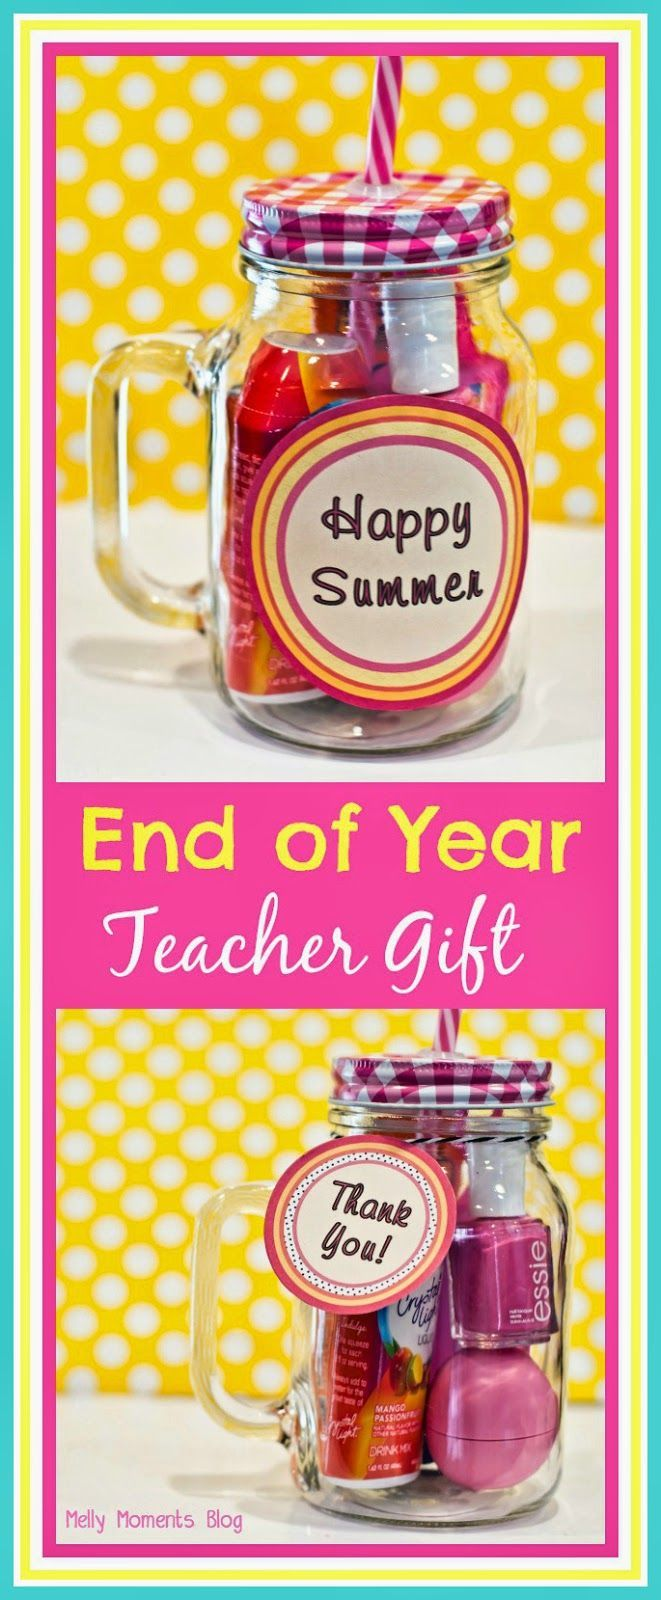 Teacher Appreciation Day or End of School Year Gift! Students can help their teacher SPLASH INTO SUMMER with this easy and affordable gift jar! Free printable tags included. (Melly Moments Blog)